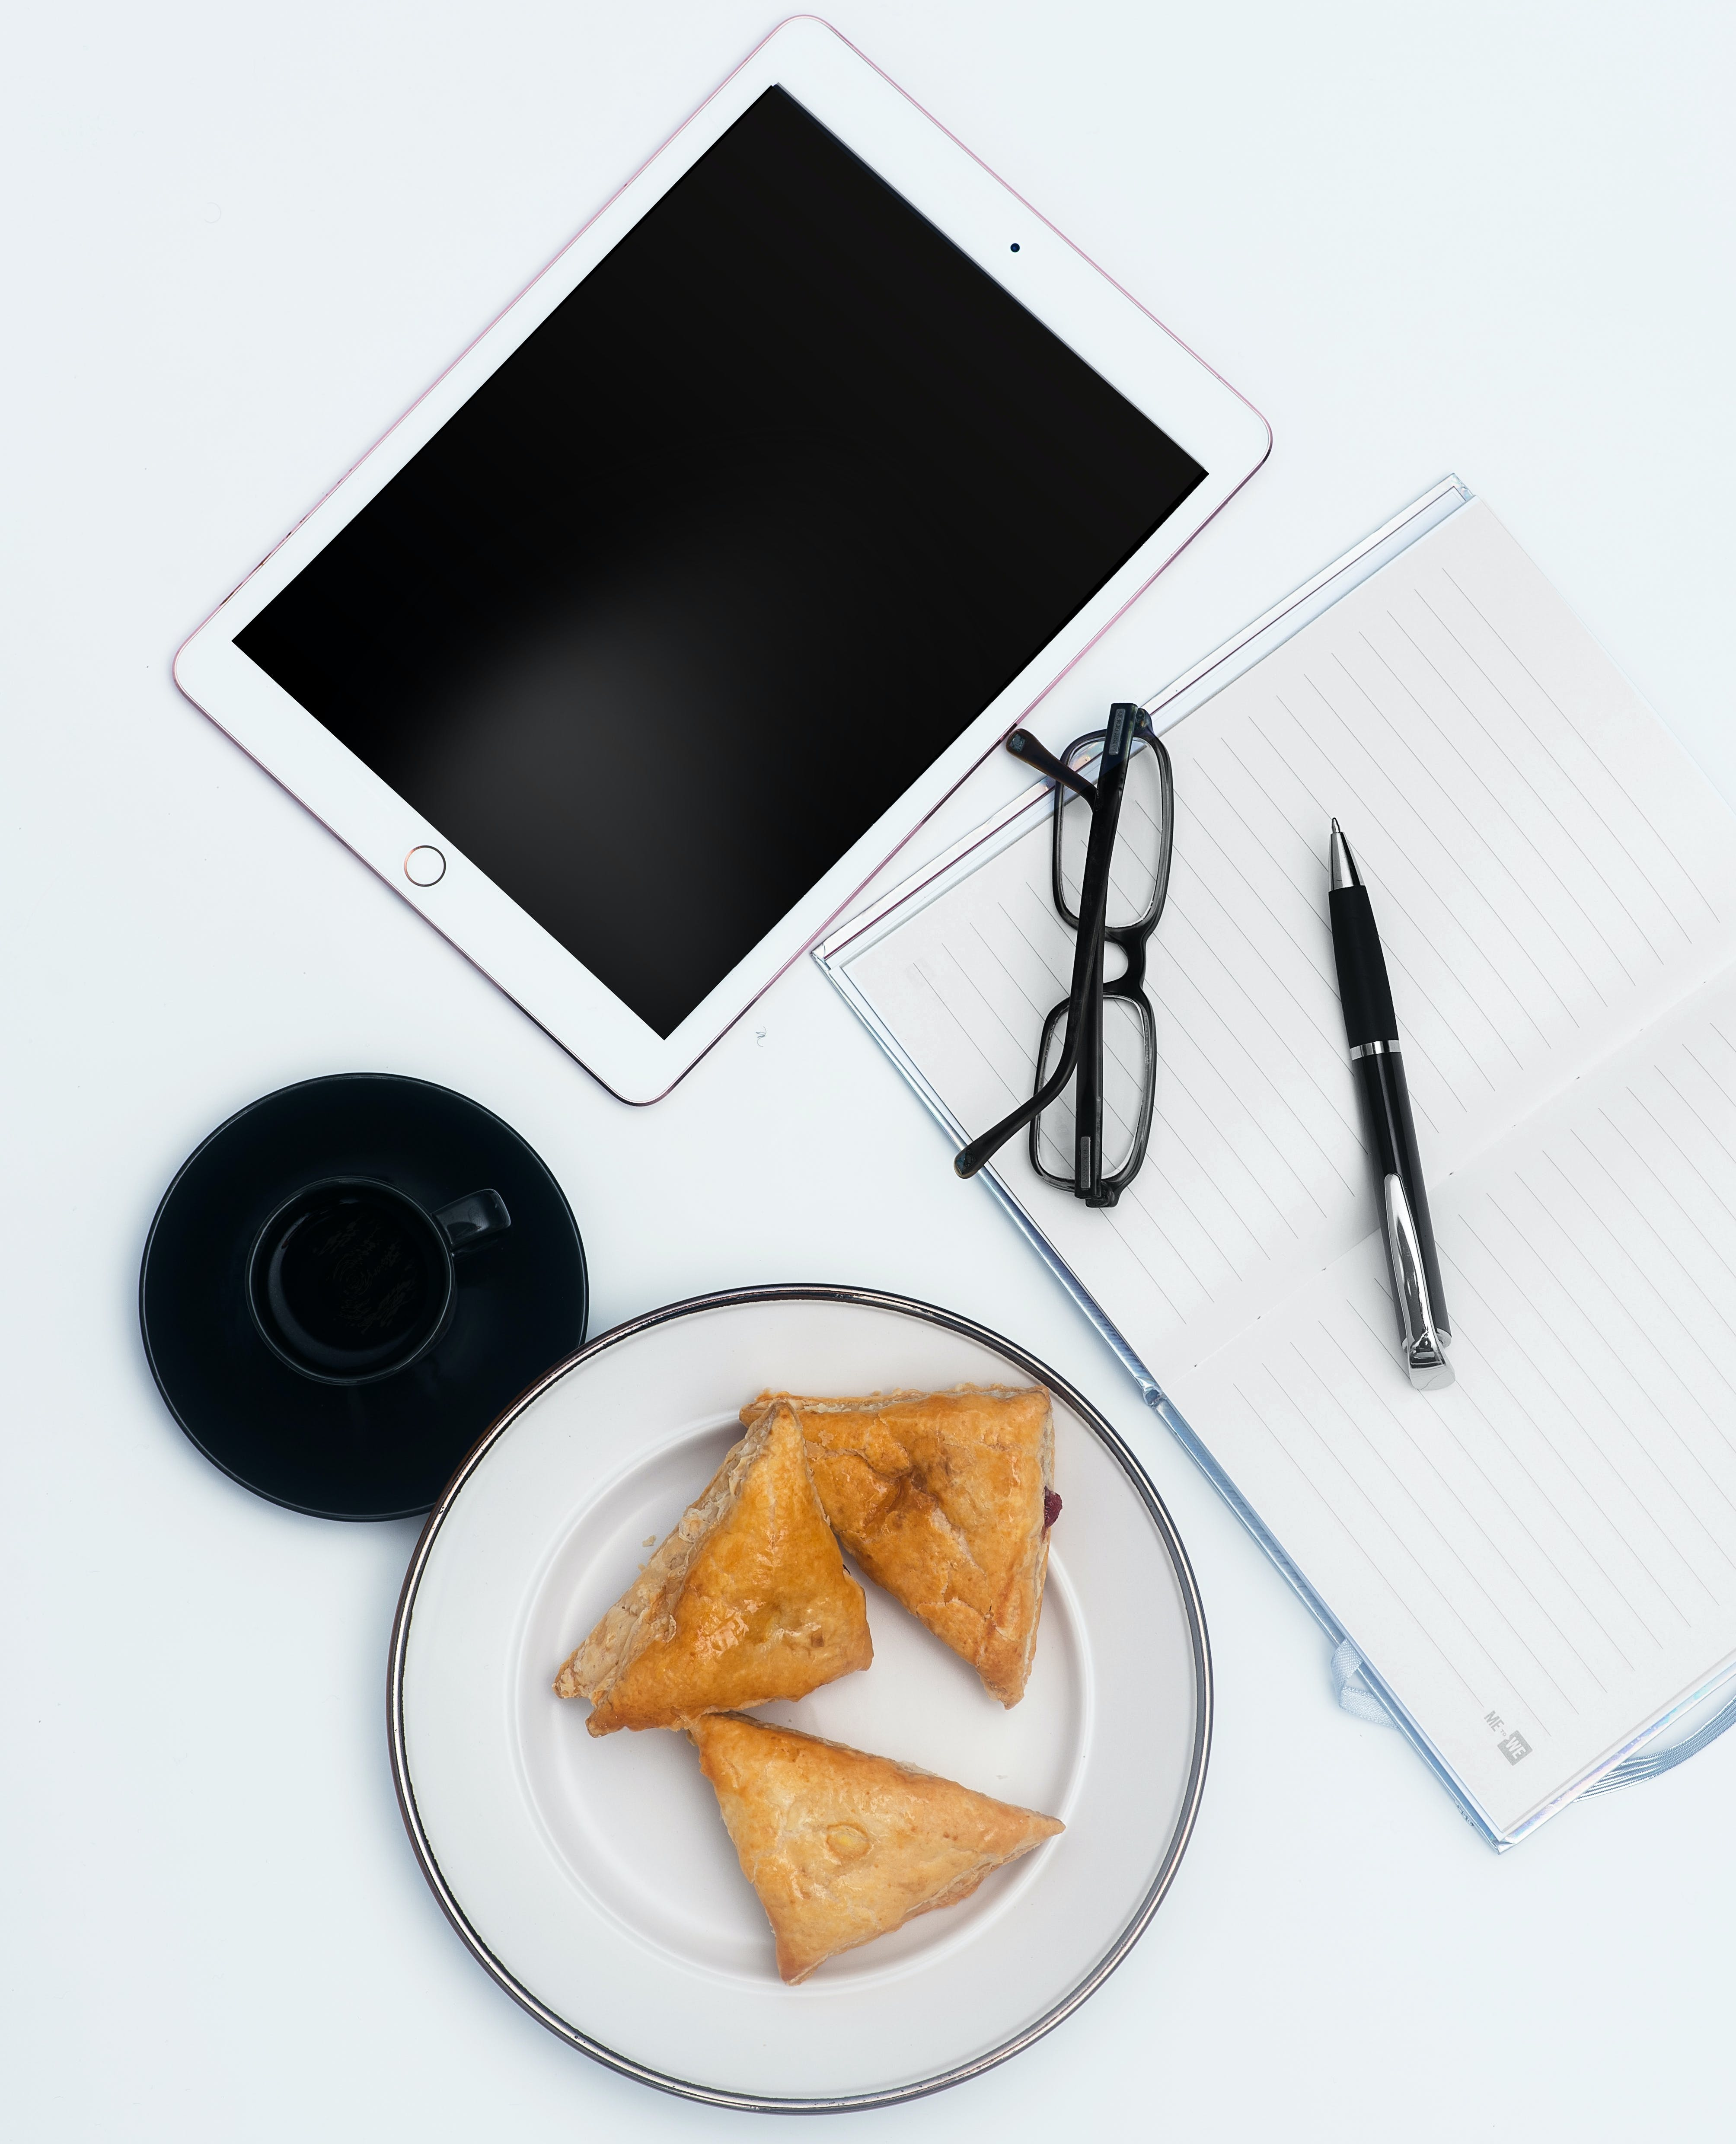 White Ipad and Items on White Surface